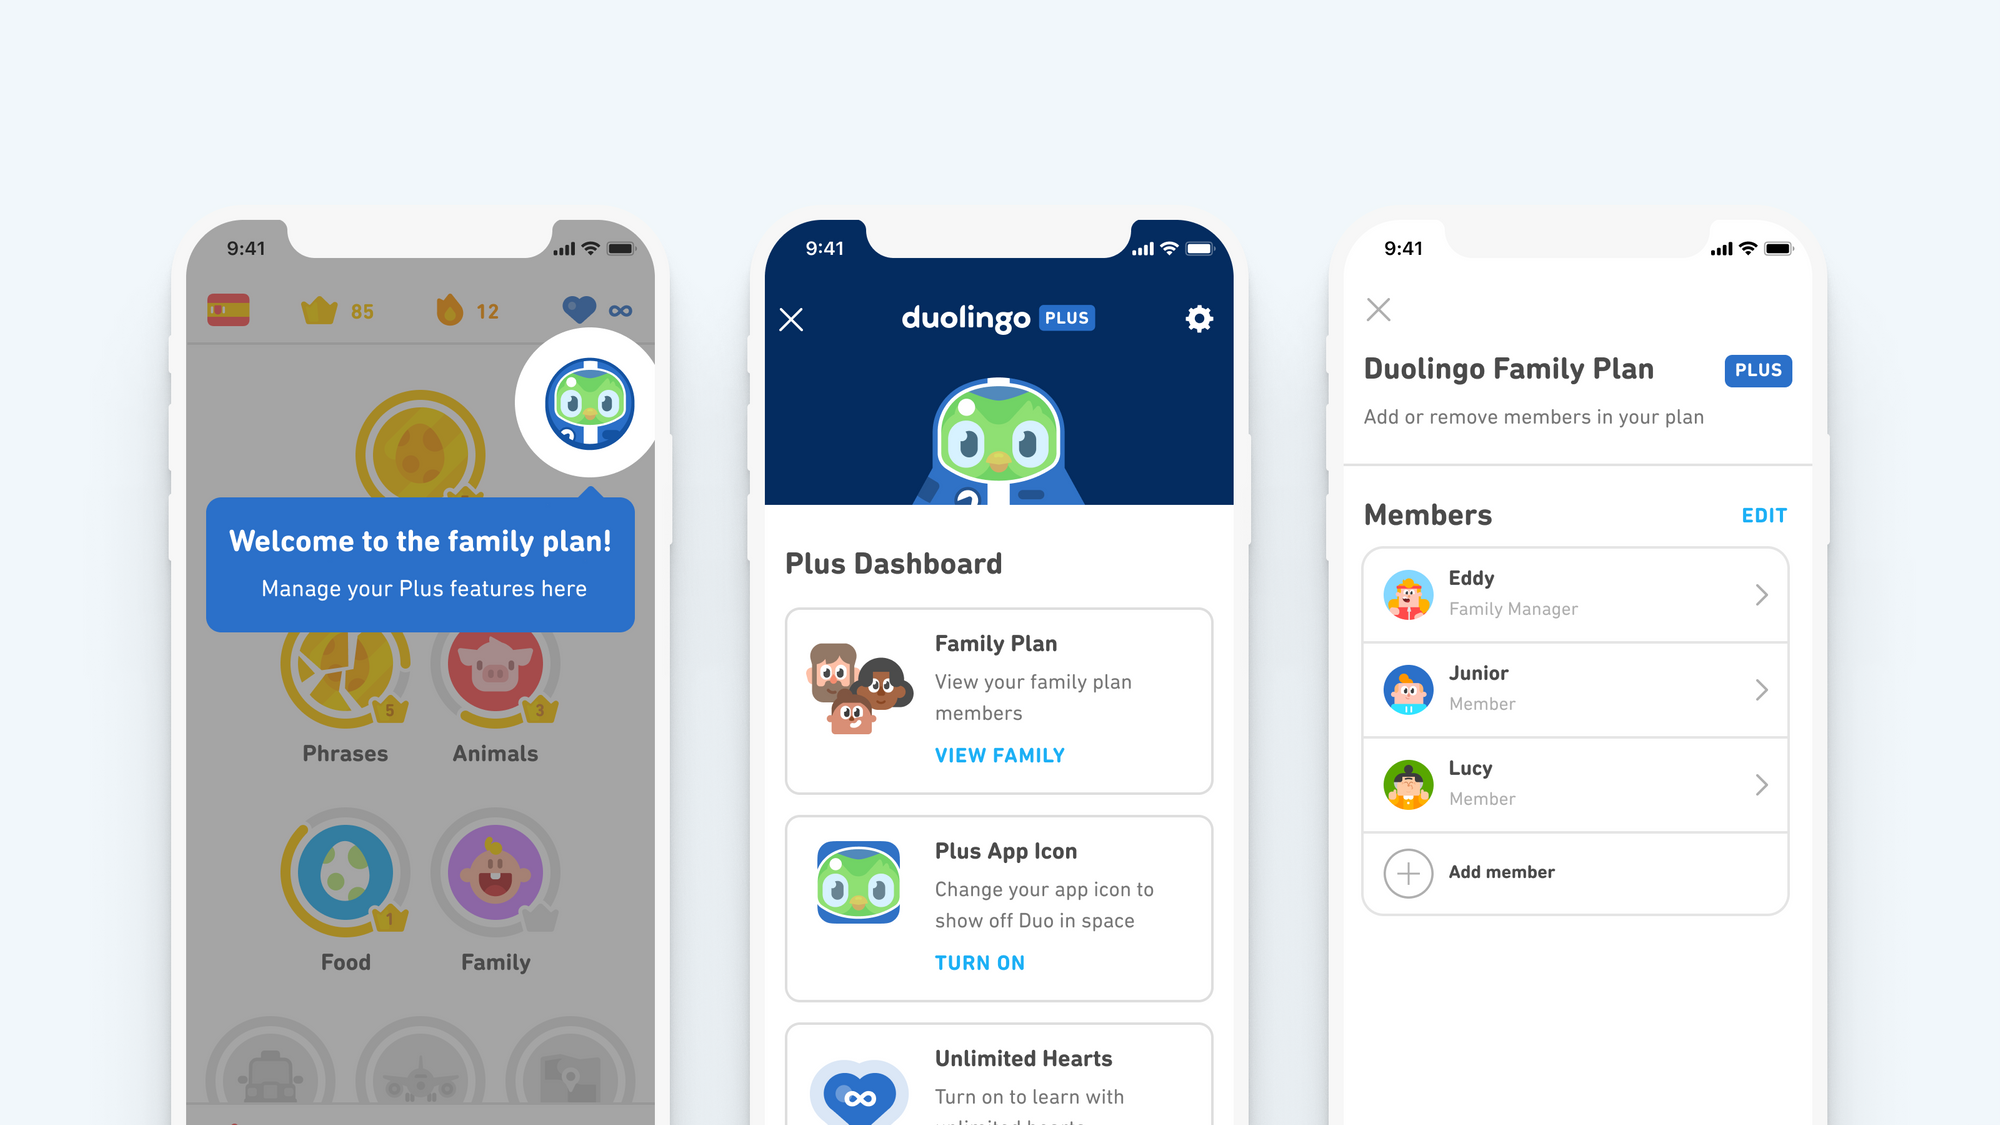 Image of three screenshots of the Family Plan in the Plus dashboard. On the left, the Duolingo Plus icon is highlighted on the home screen. In the middle is the Plus dashboard screen with the Family Plan listed at the top. On the right is the Family Plan screen with the list of members.